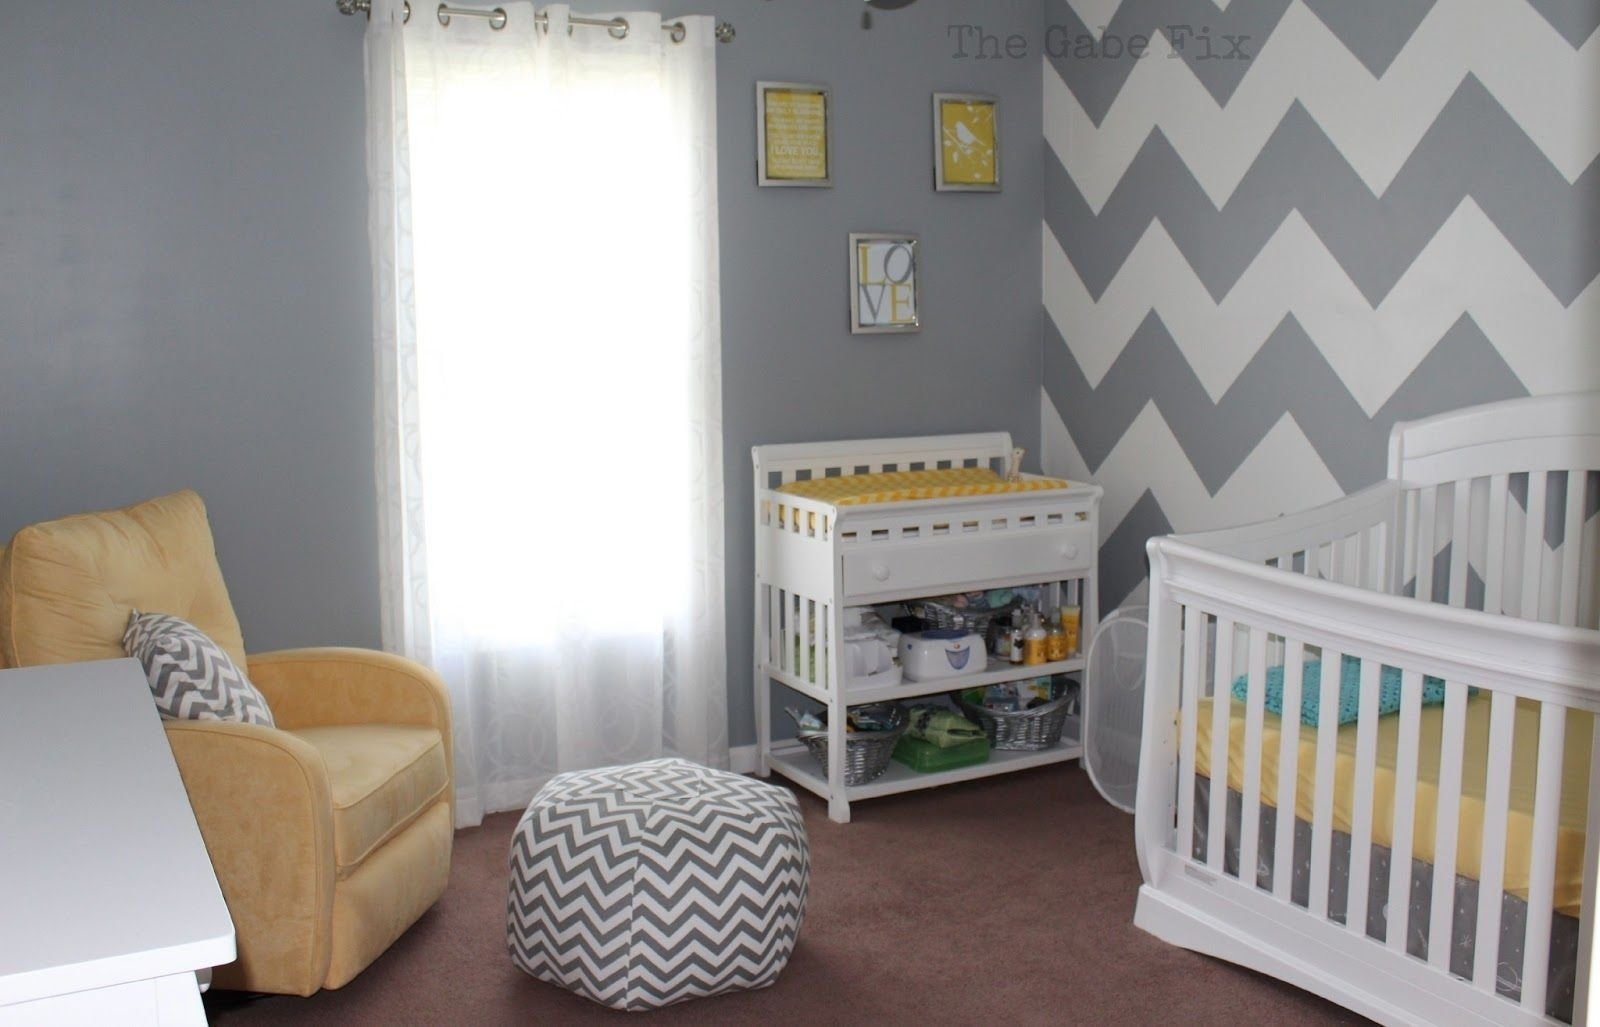 7 creative uni-sex nursery ideas | nursery, babies and room